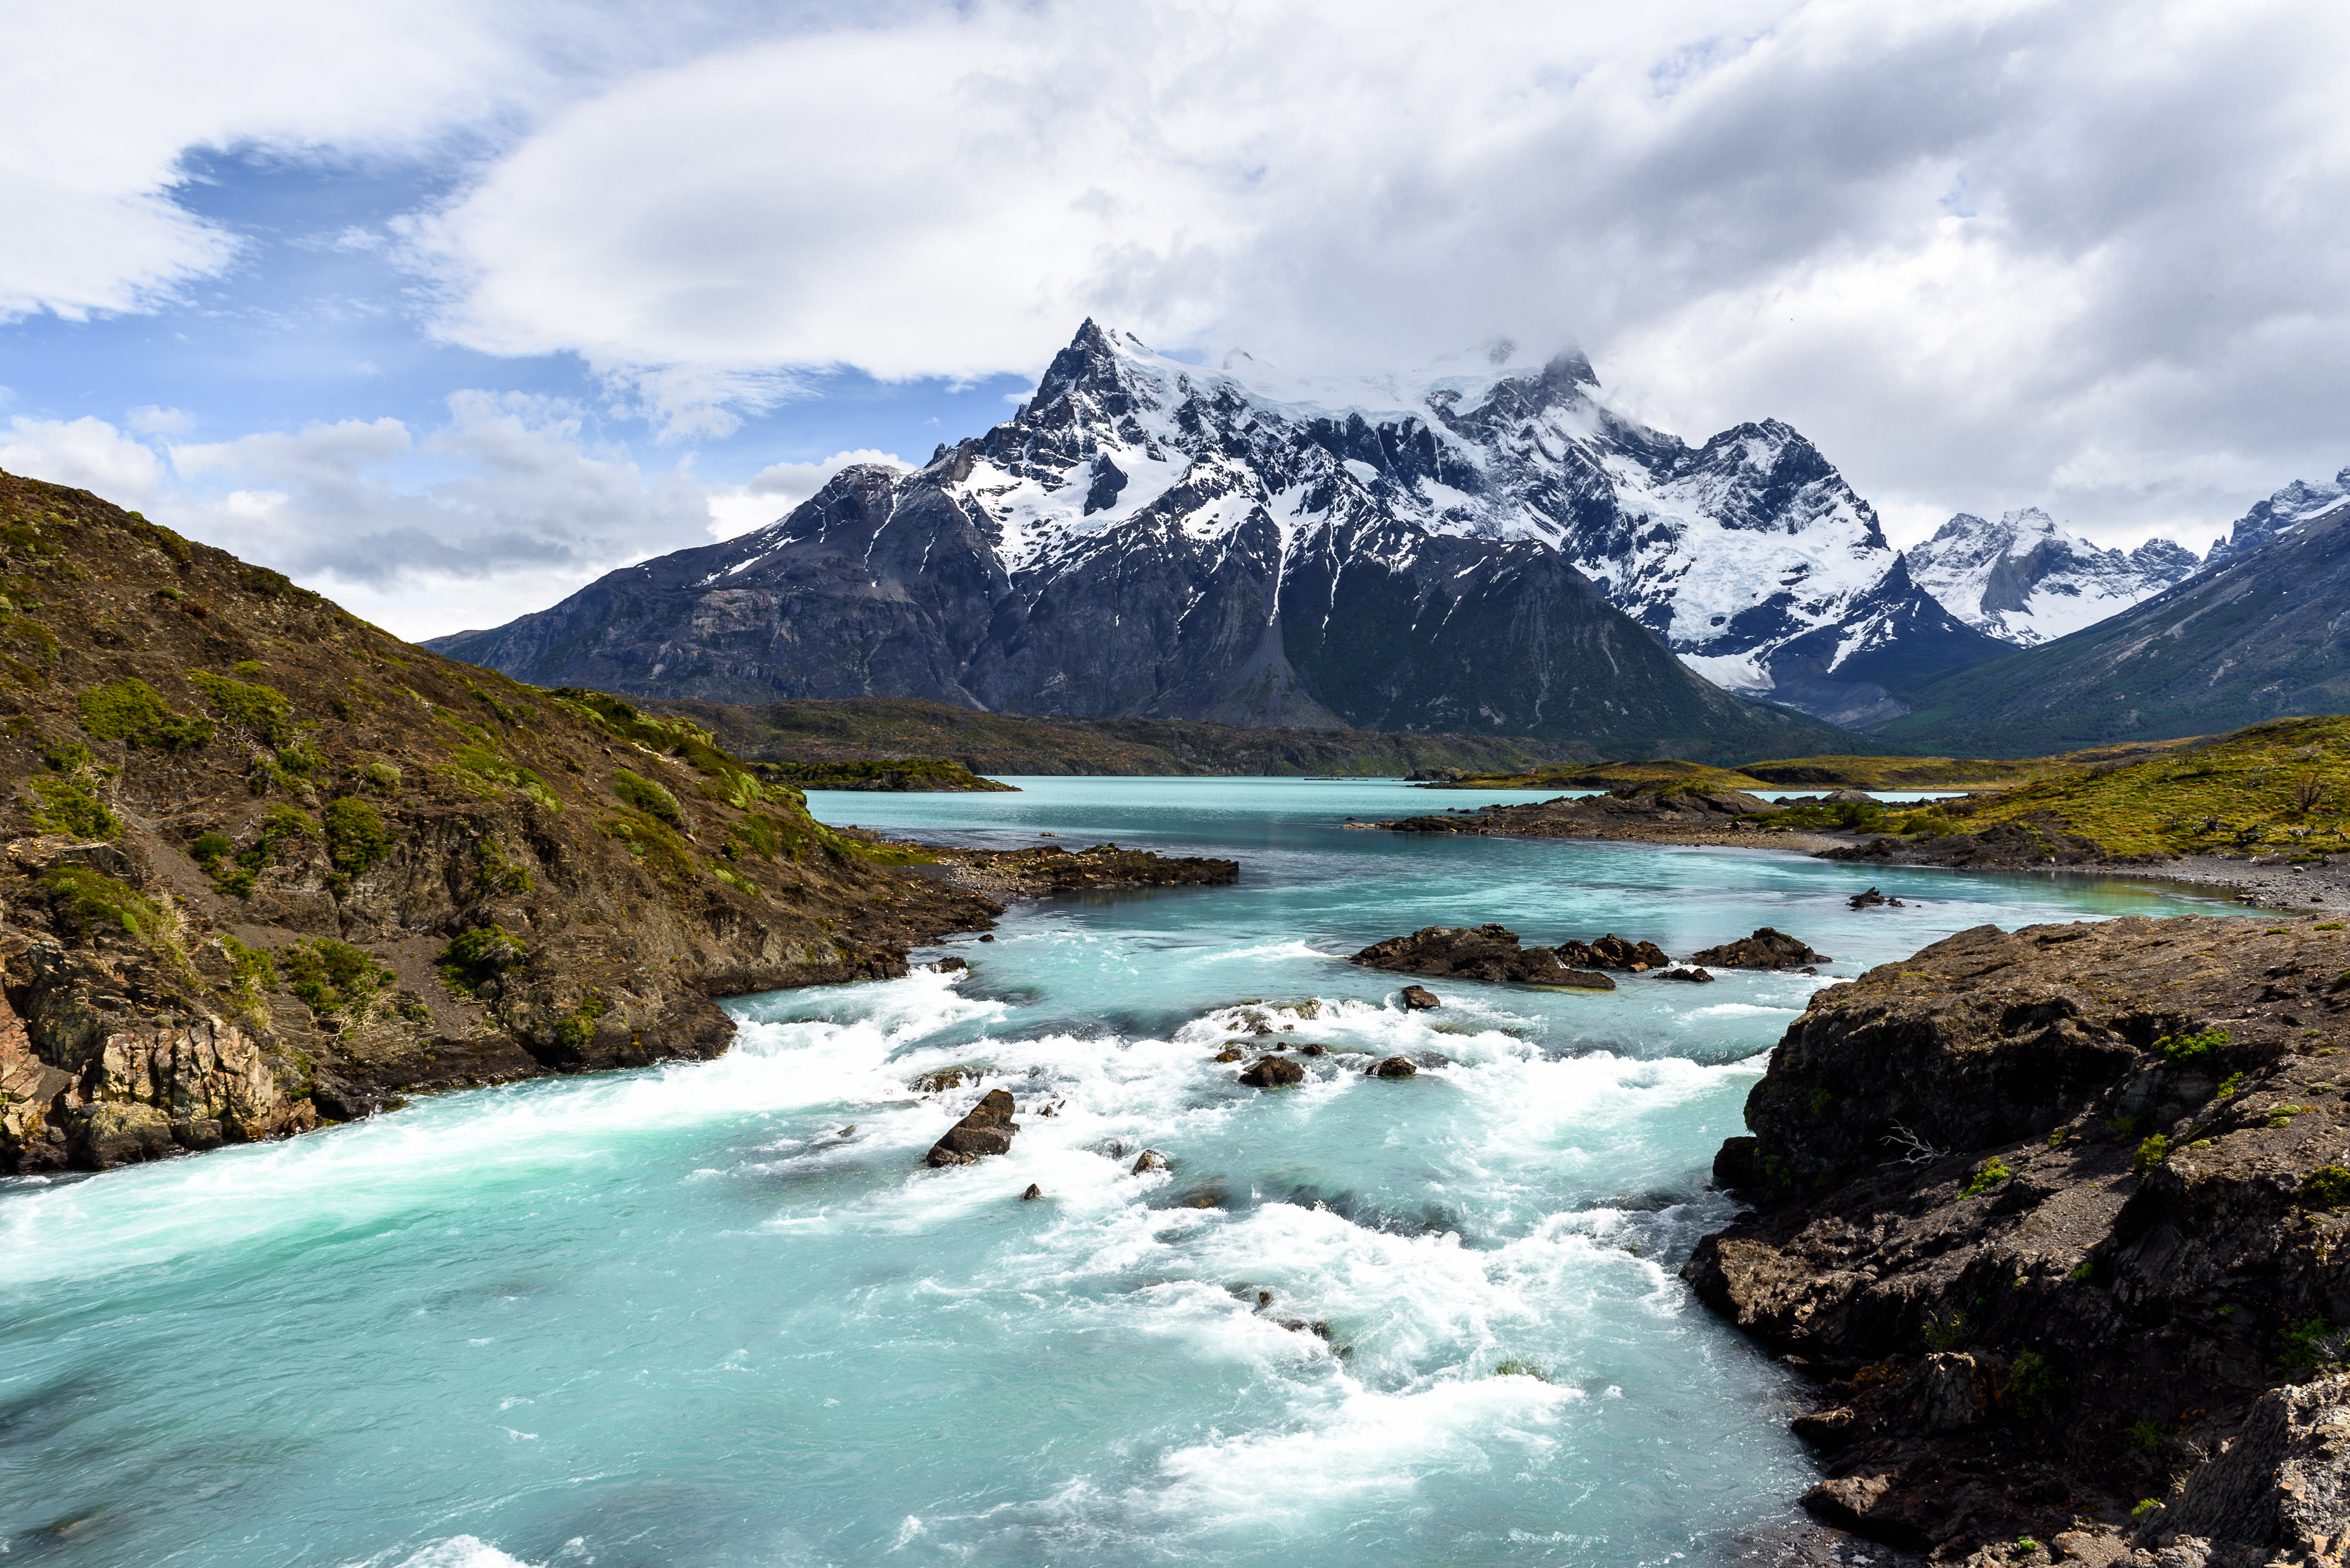 Torres del Paine, Chile, South America. Photo Credit: Shutterstock